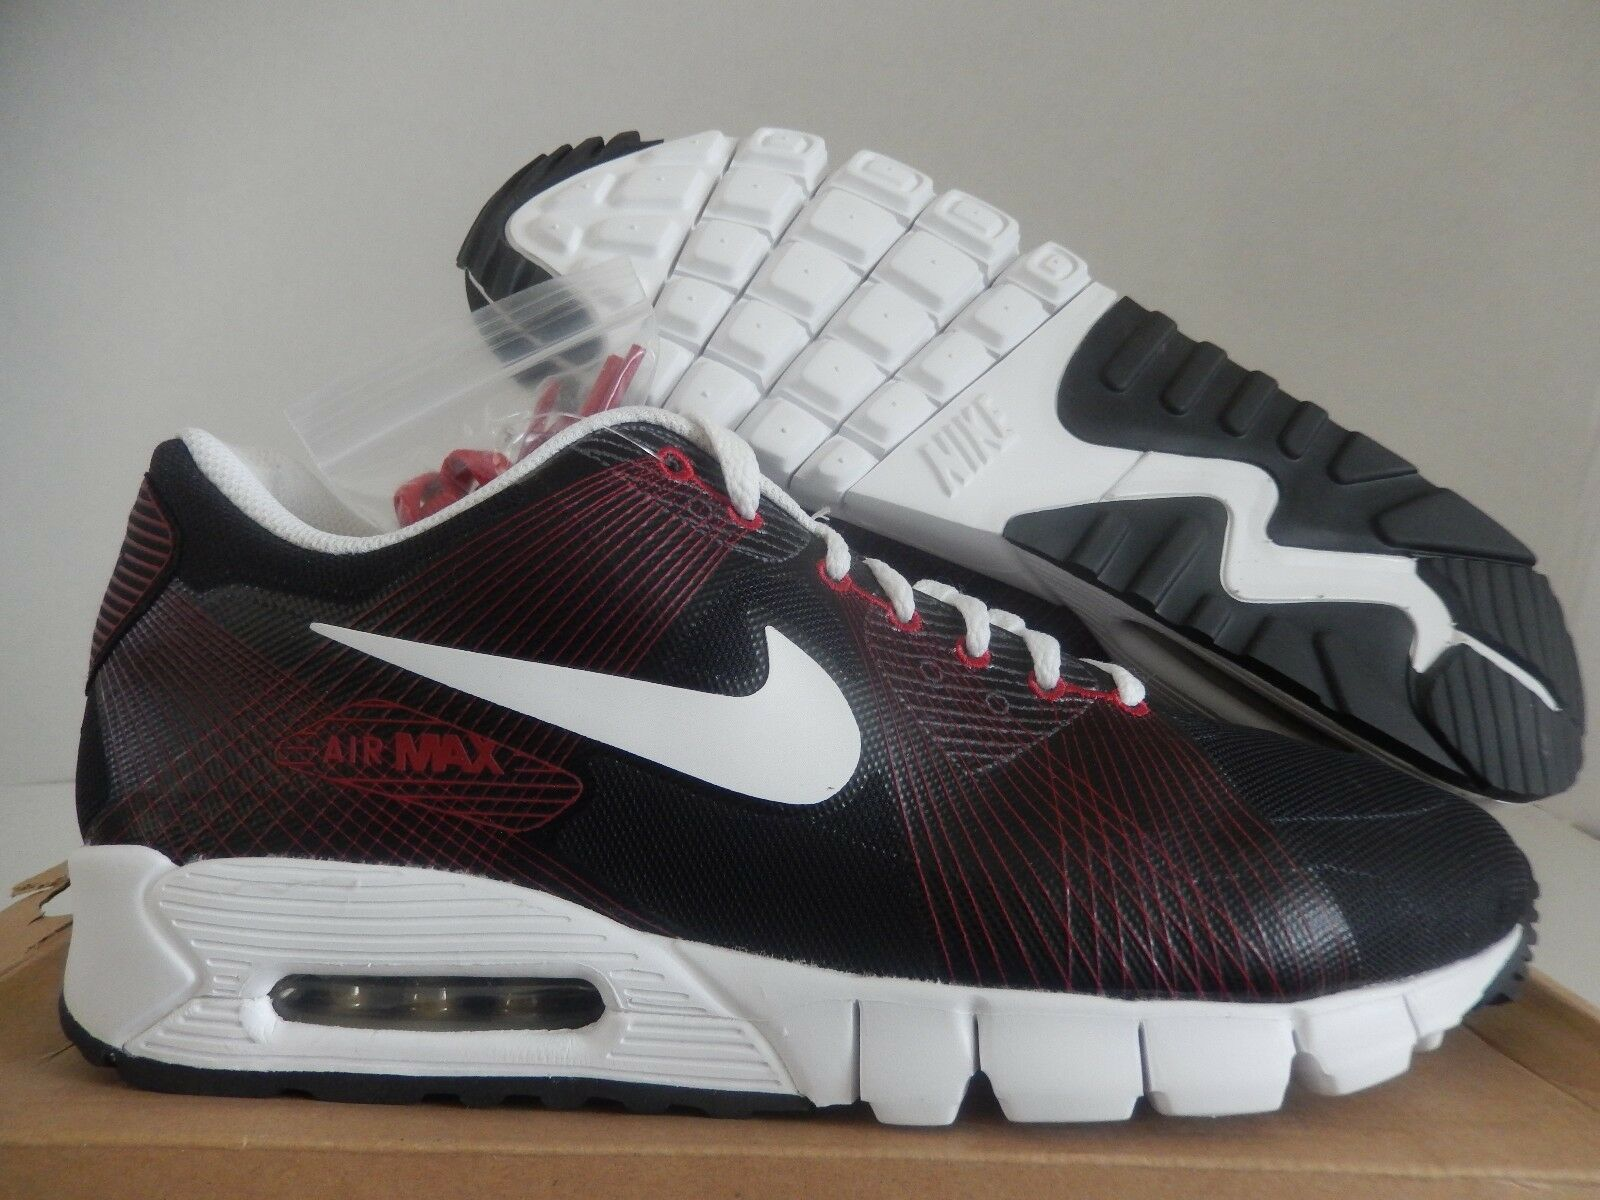 NIKE AIR MAX 90 FLYWIRE BLACK-WHITE-VARSITY RED SZ 13 RARE! [347651-012]